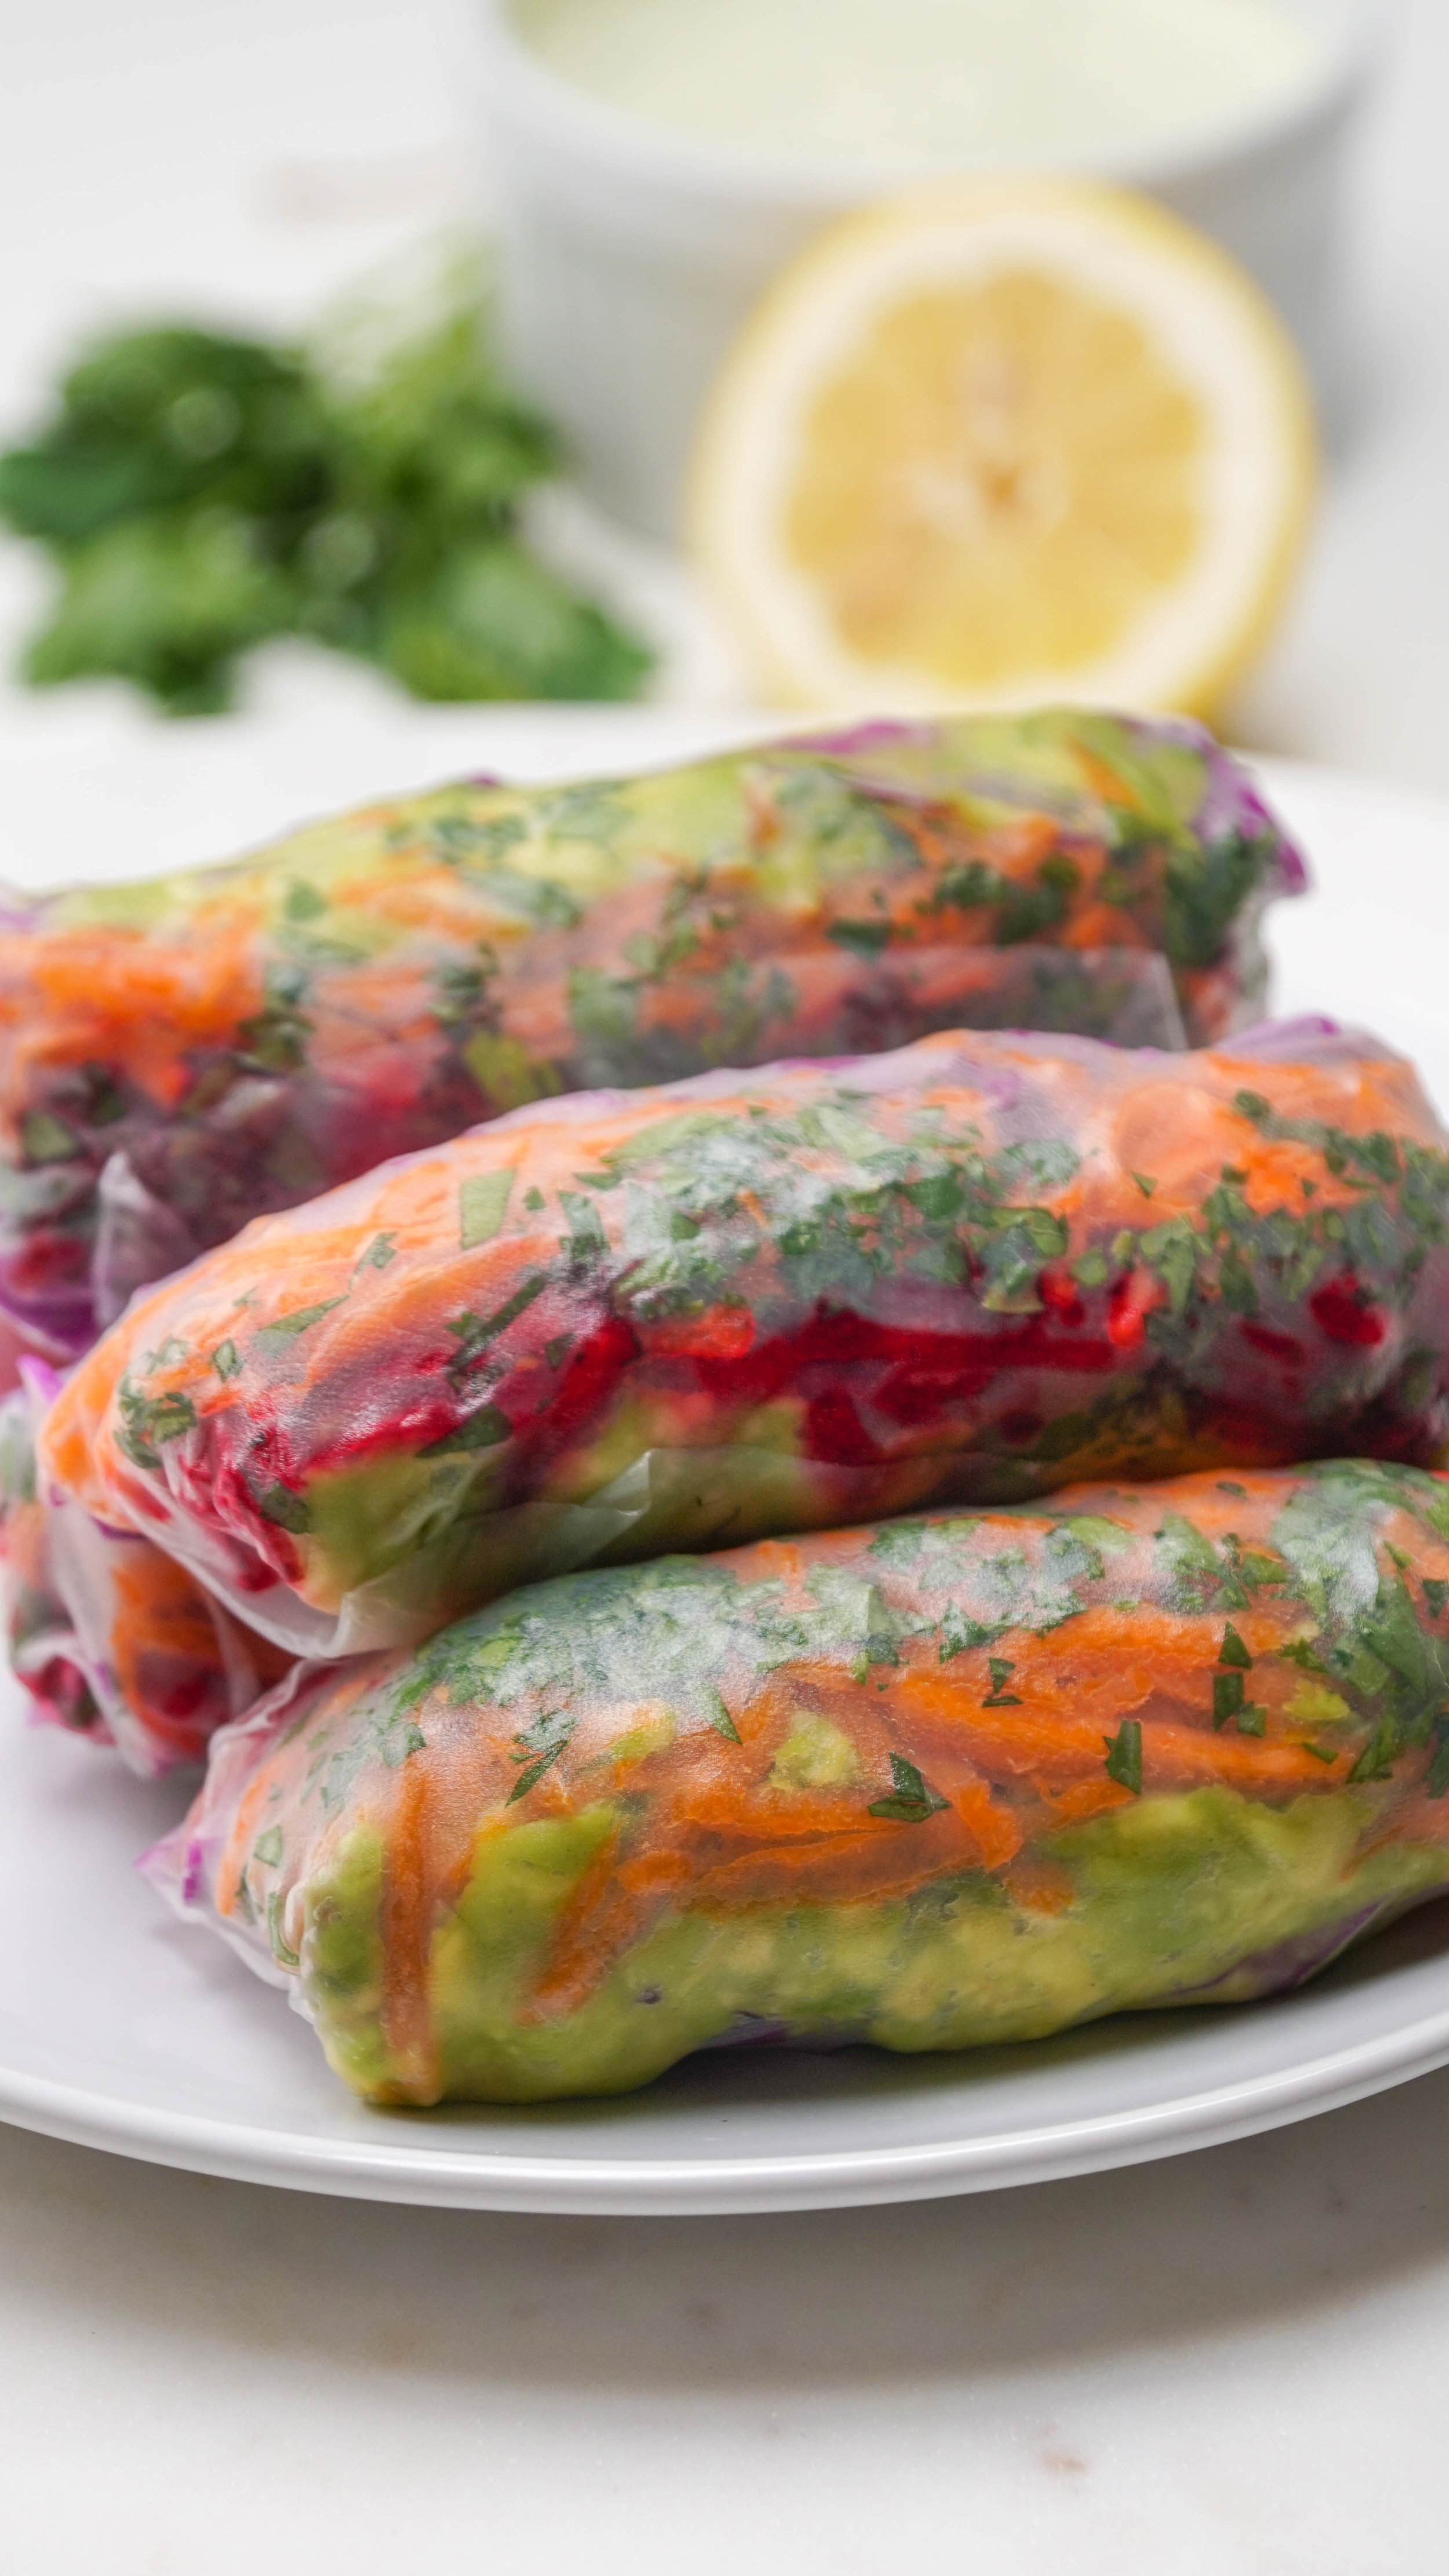 Grated raw vegetable rolls with dairy-free sauce